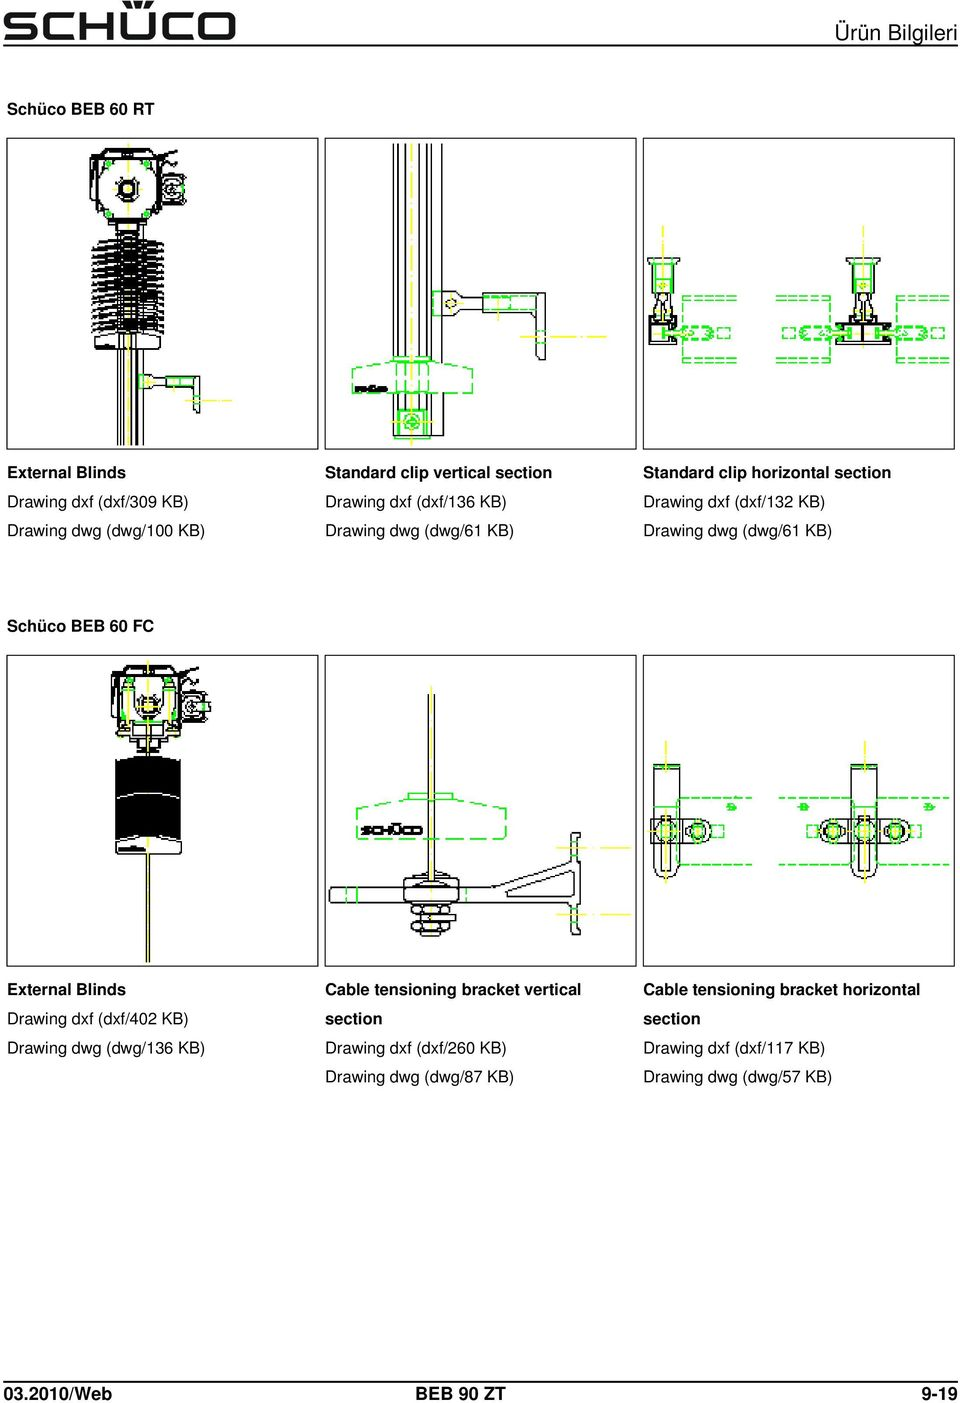 External Blinds Drawing dxf (dxf/402 KB) Drawing dwg (dwg/136 KB) Cable tensioning bracket vertical Drawing dxf (dxf/260 KB)